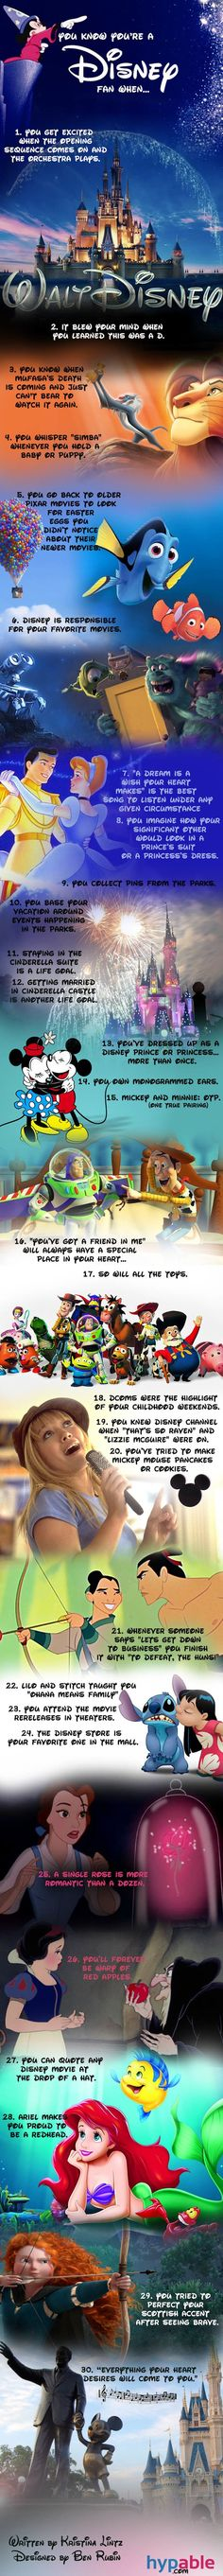 You Know You're A Disney Fan When… [Infographic]